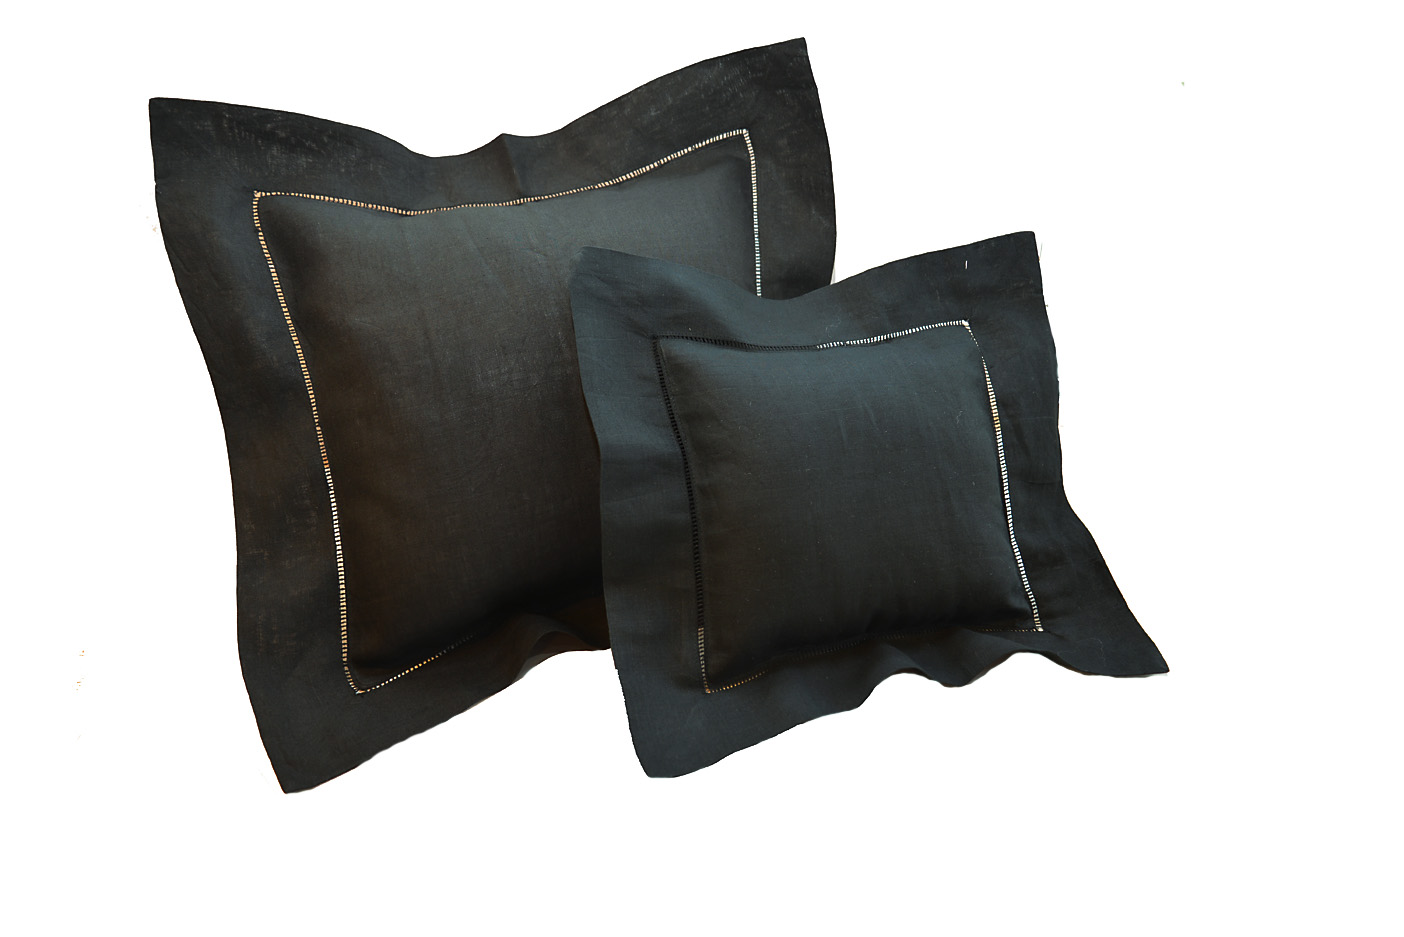 Black colored baby pillows